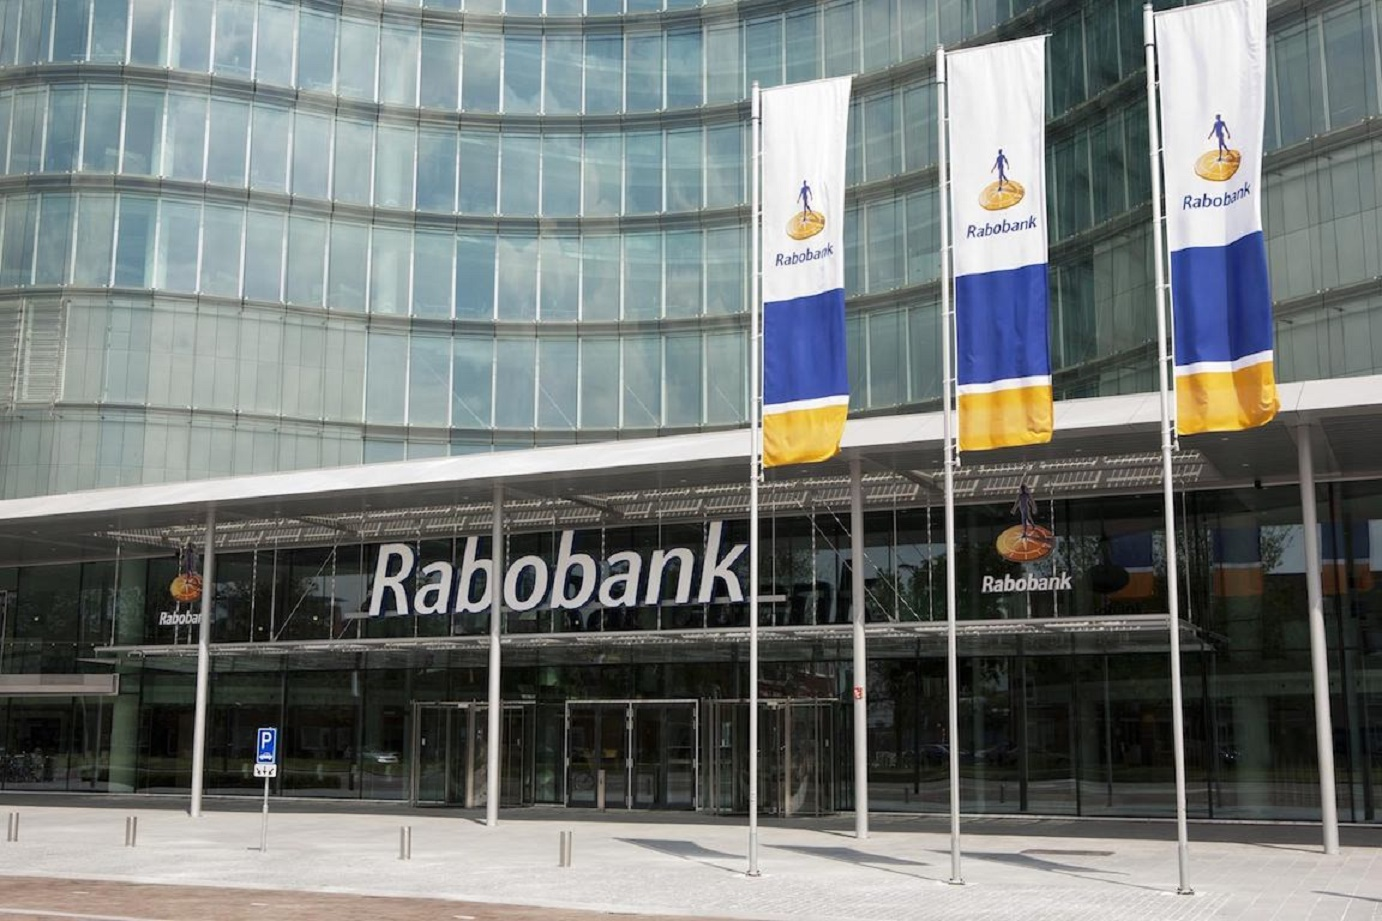 Rabobank complicit in Mexican drug cartels' crimes